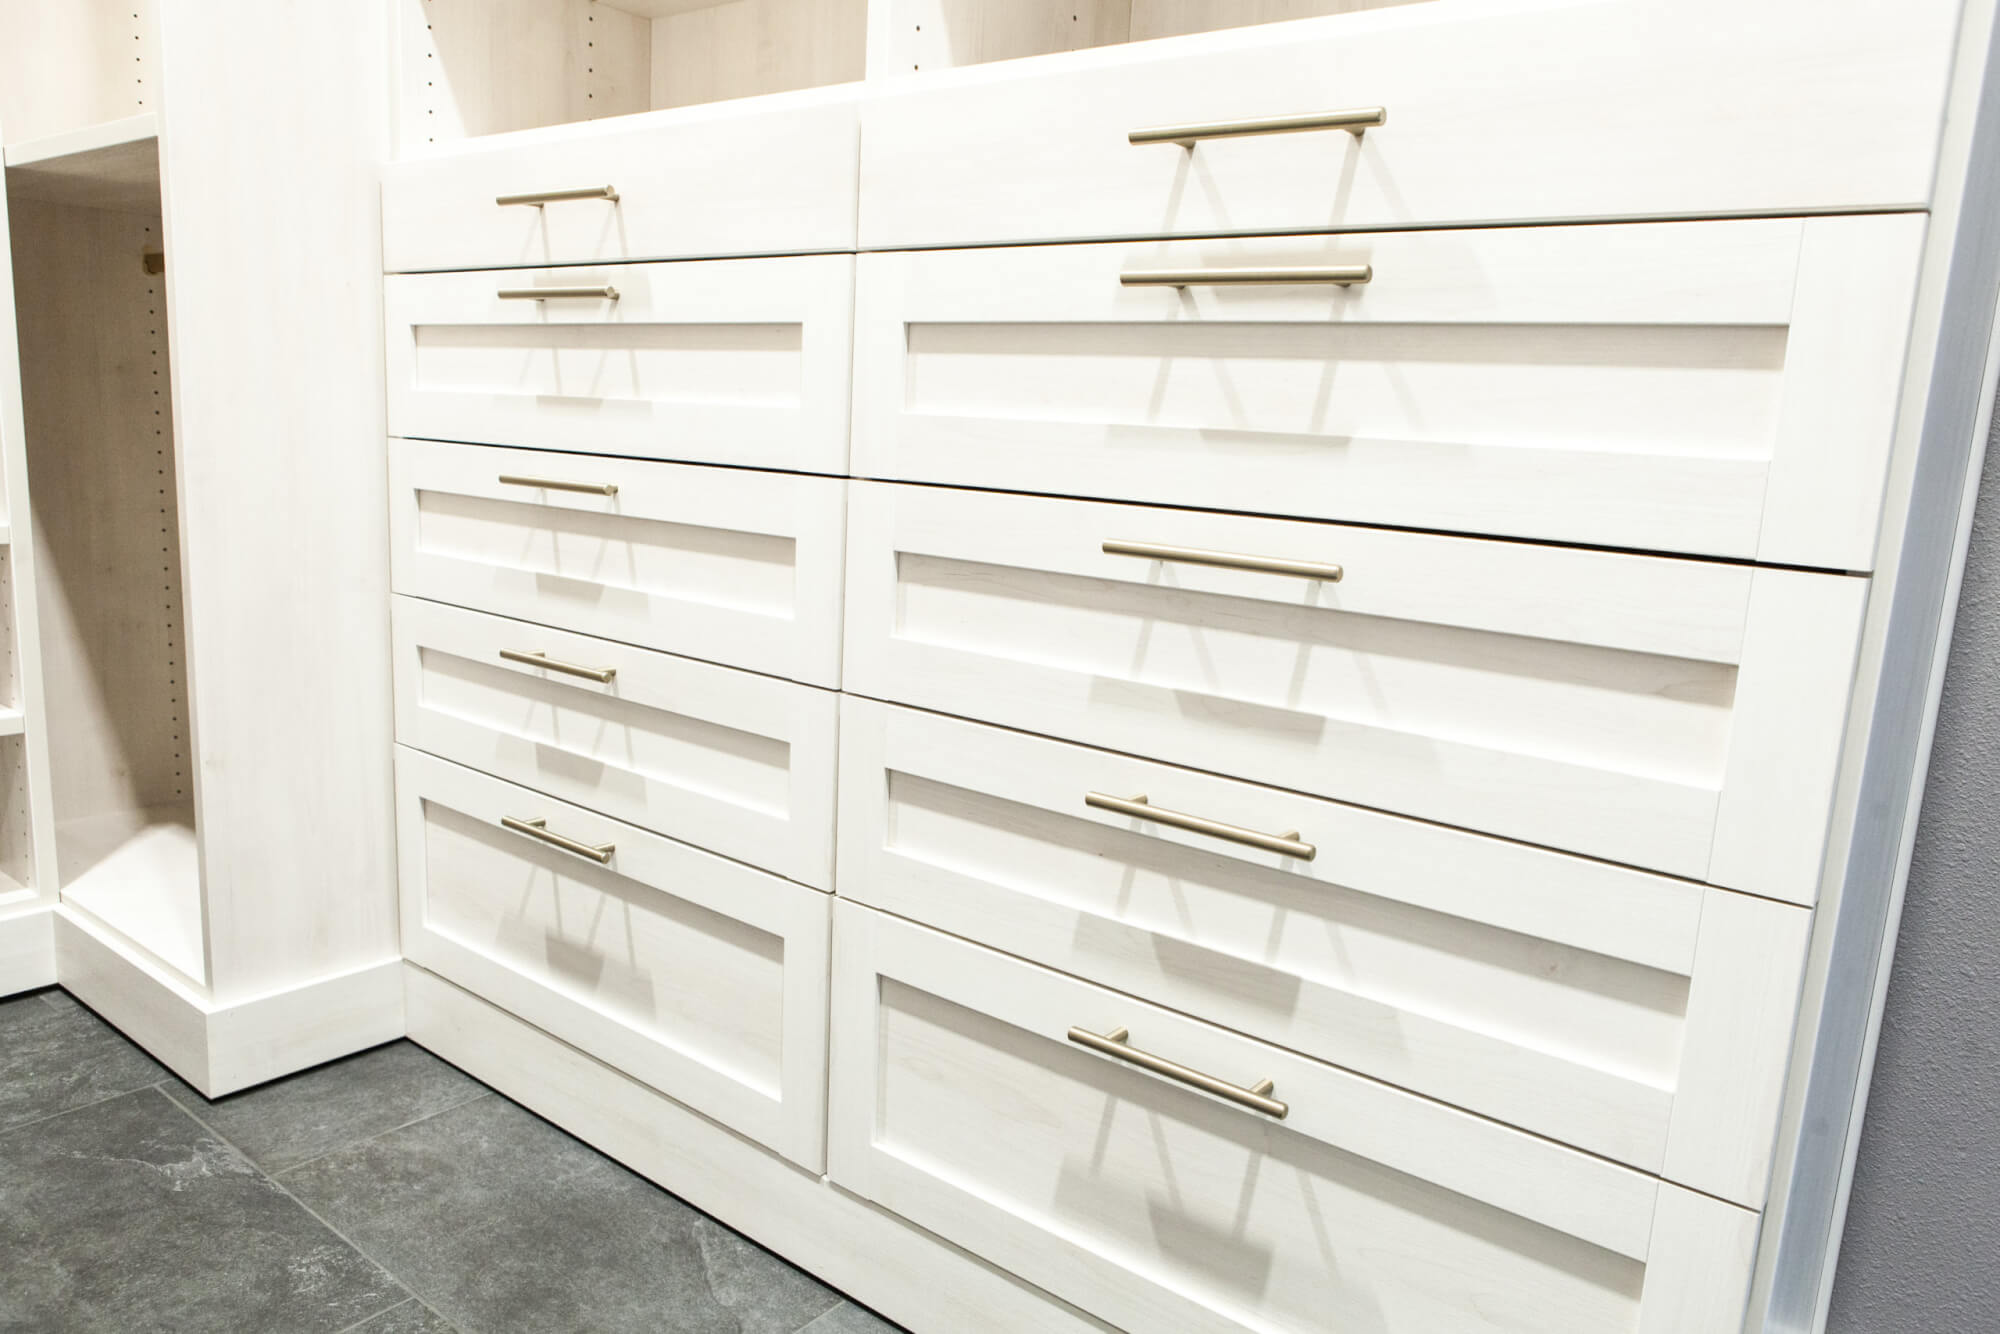 up close of custom clothing drawers in a walk-in bathroom closet